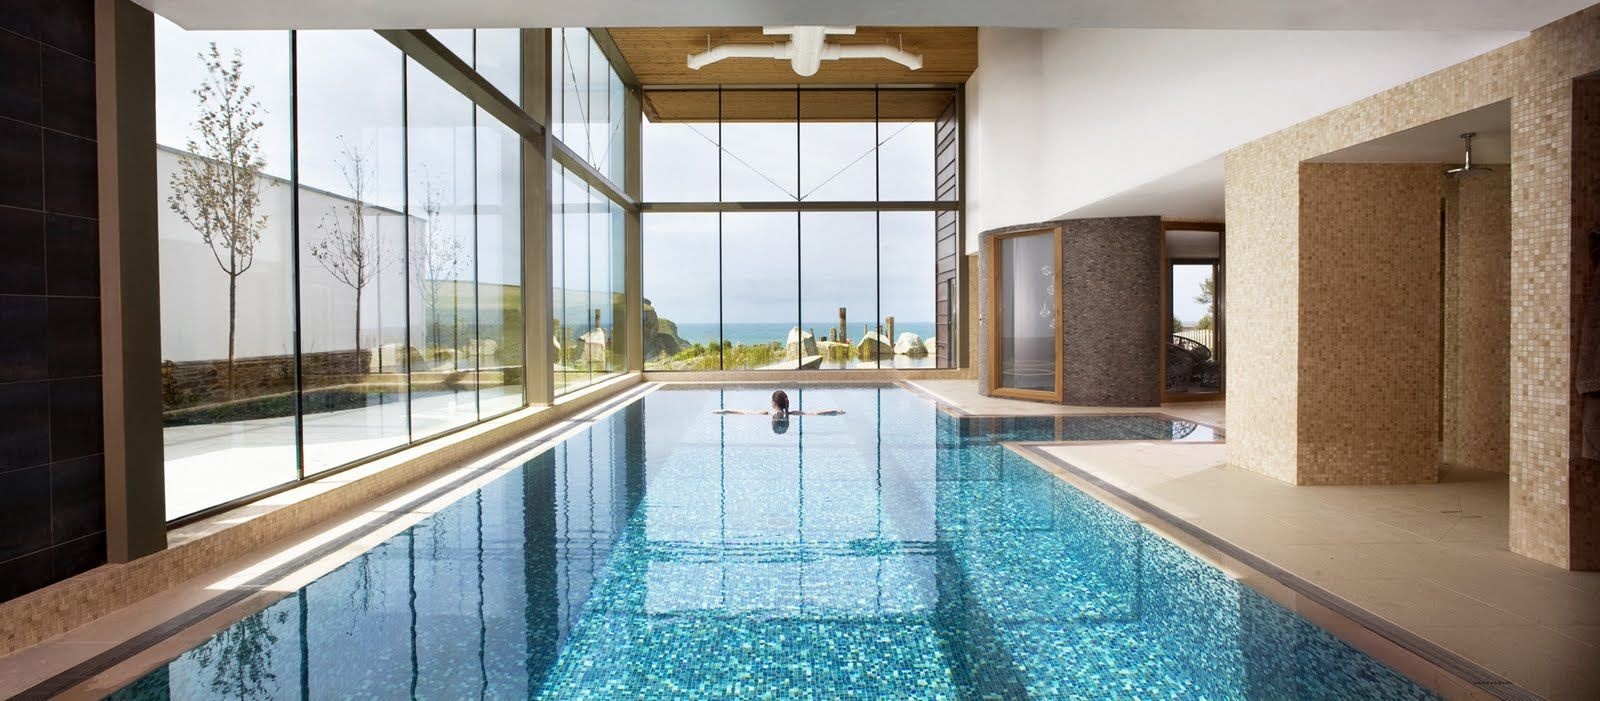 explore indoor swimming pools and more